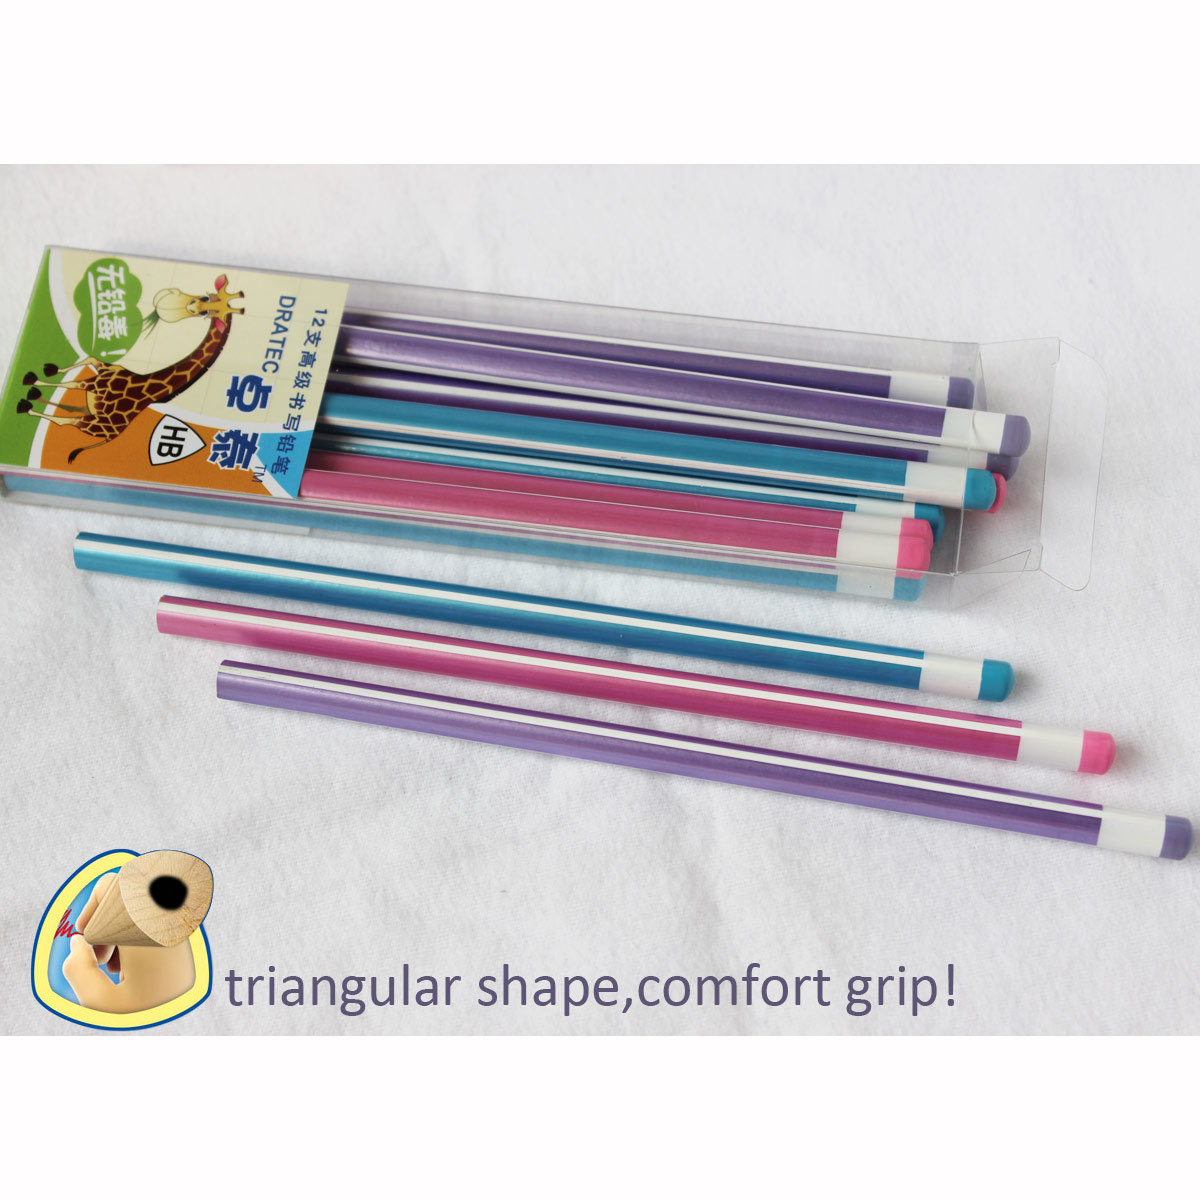 Triangle Pencils Hb with Stripe Paiting, Wooden Pencils (3614)